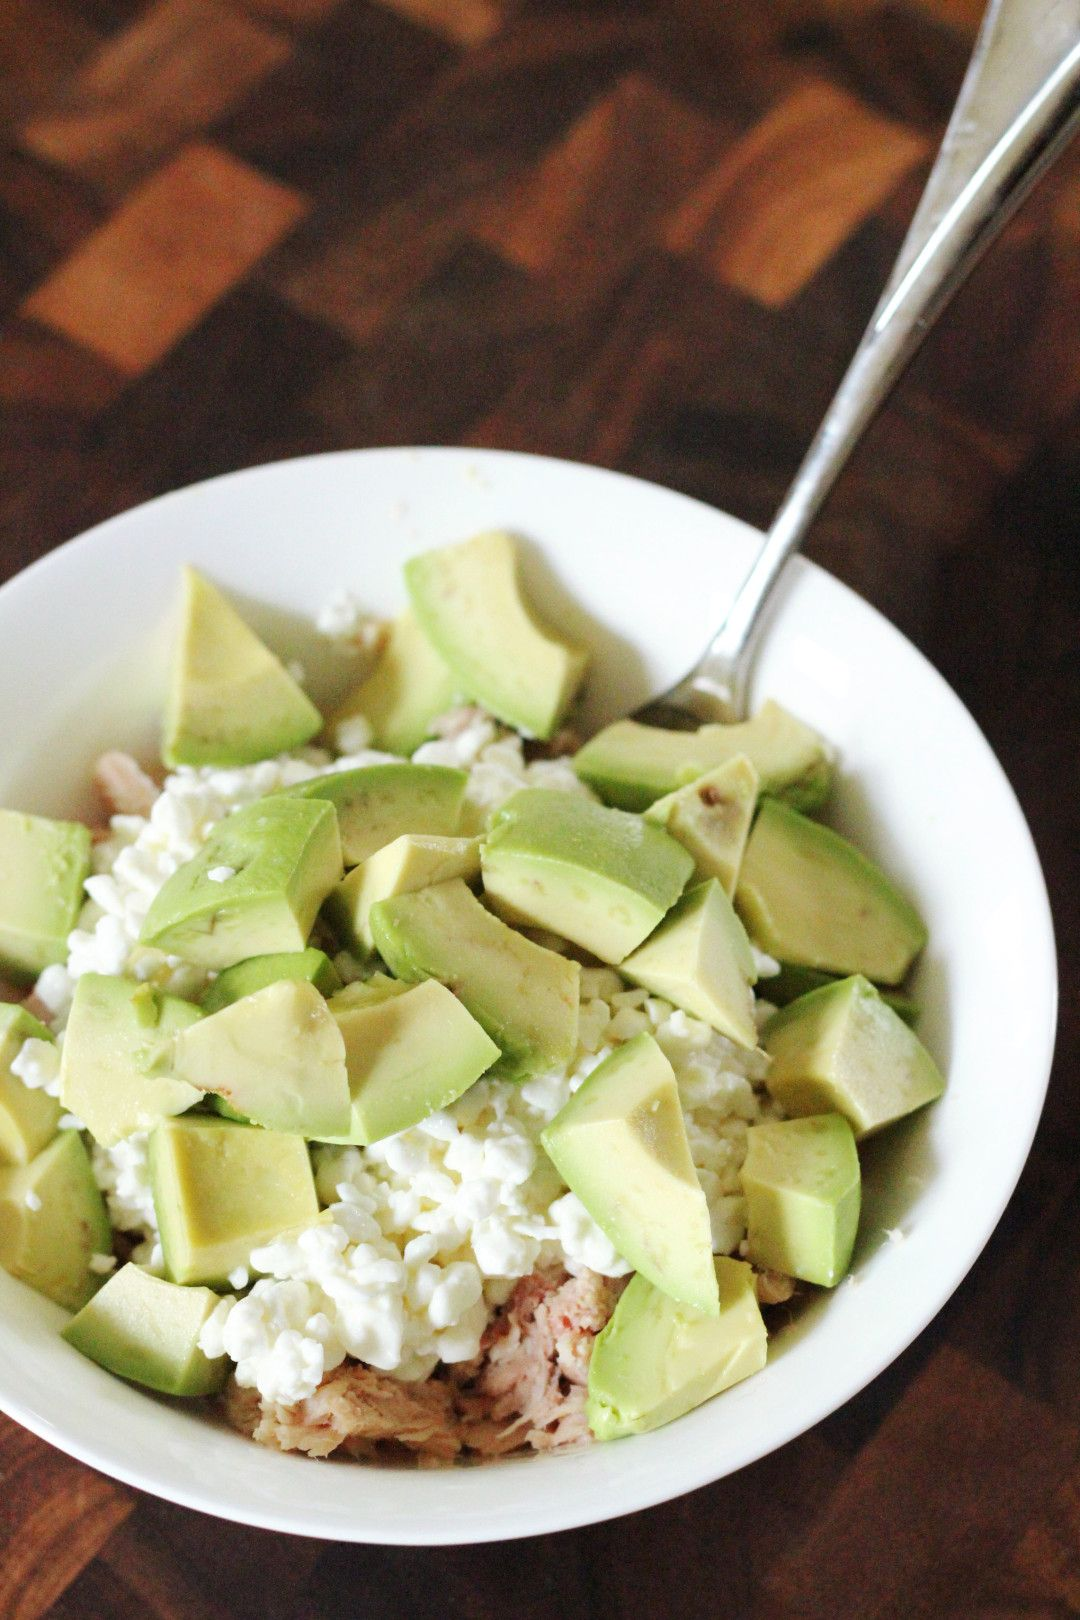 10 Minute Lunches: Tuna, Cottage Cheese,